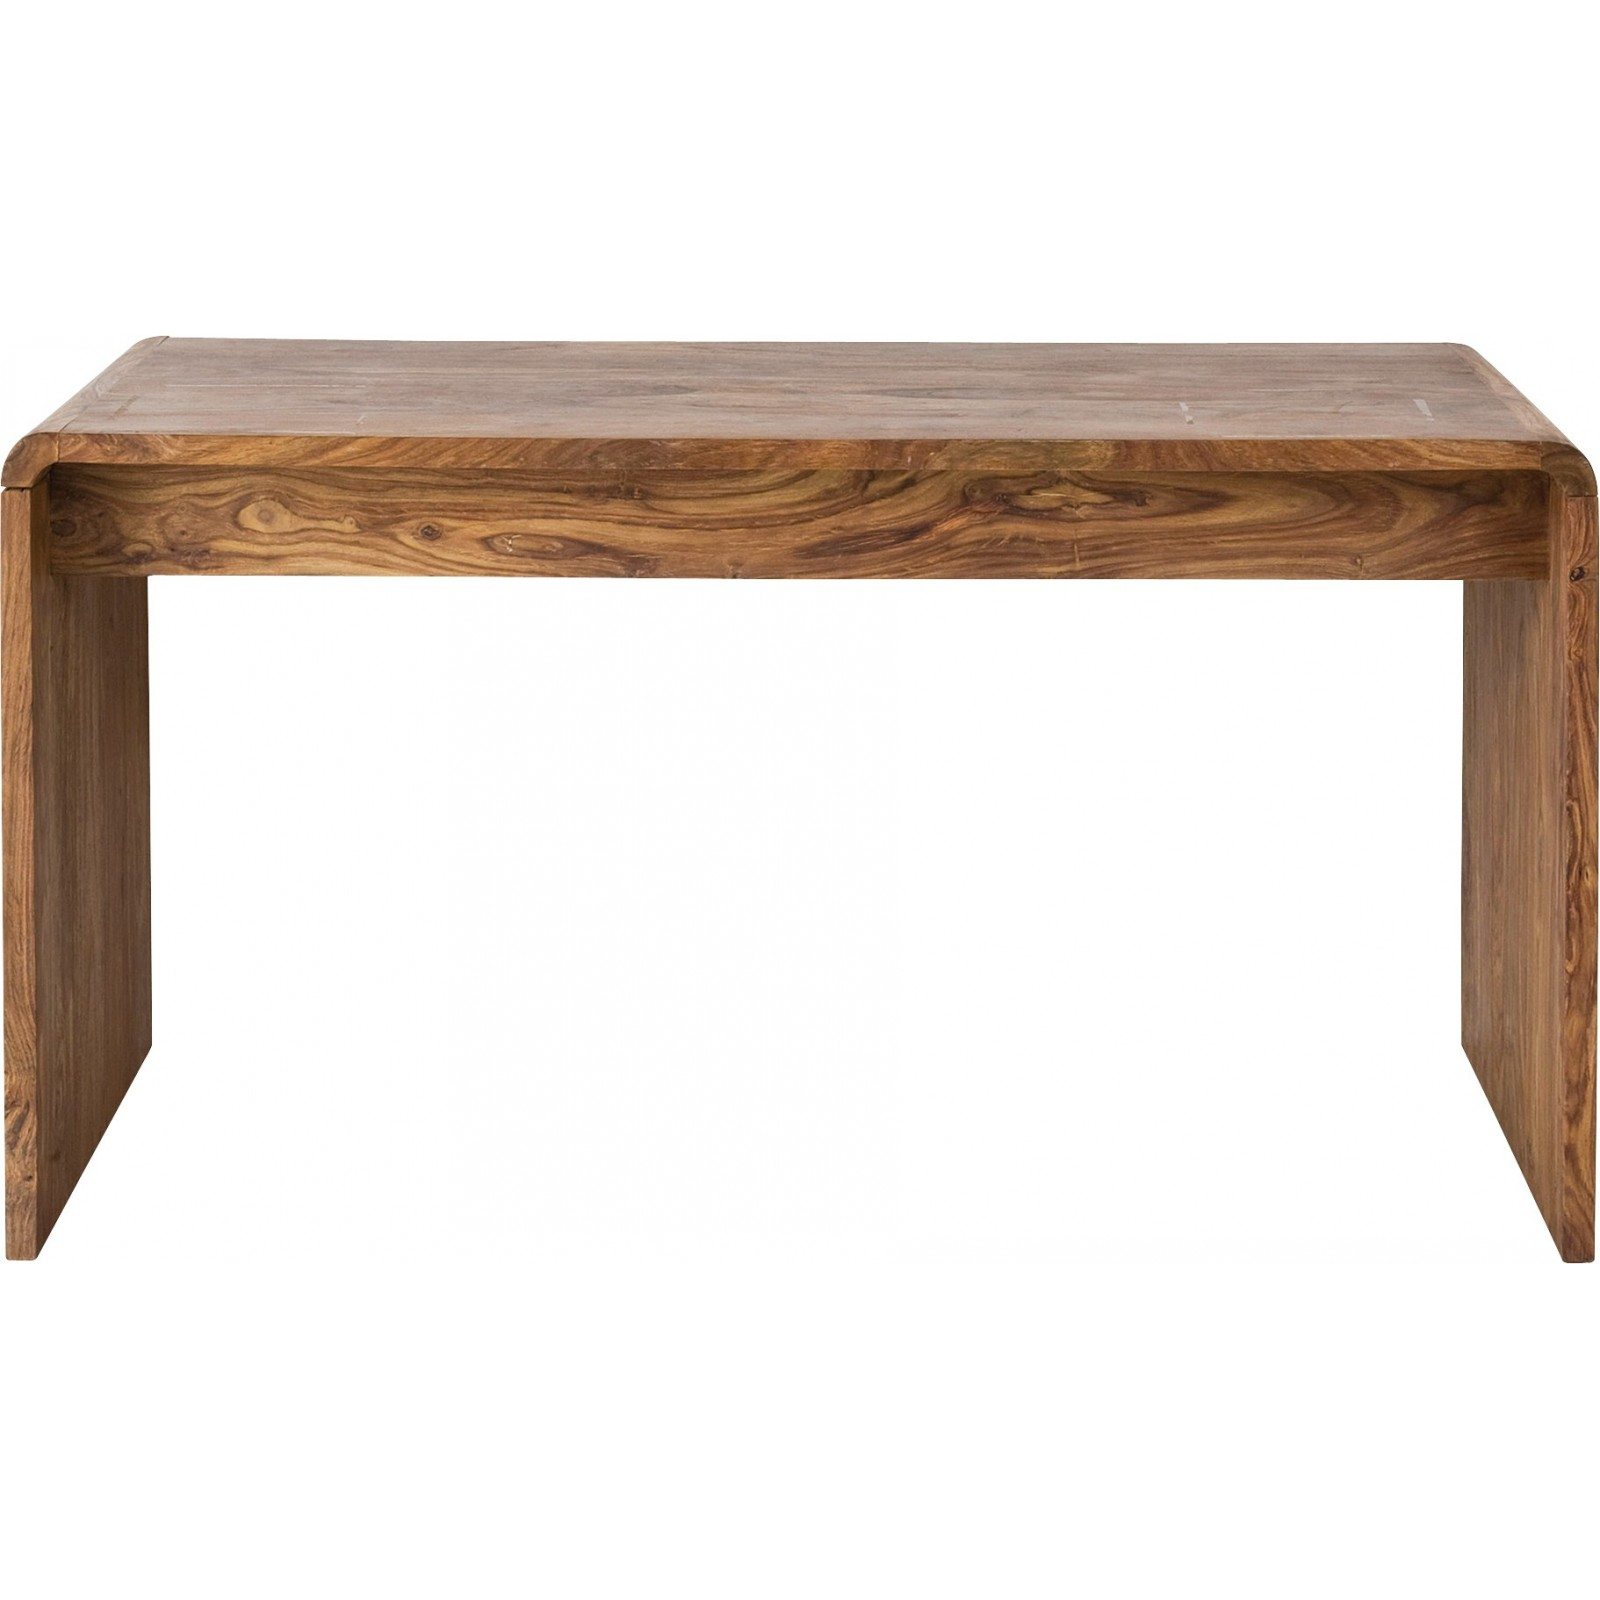 Bureau contemporain en bois authentico club kare design for Bureau 70 x 50